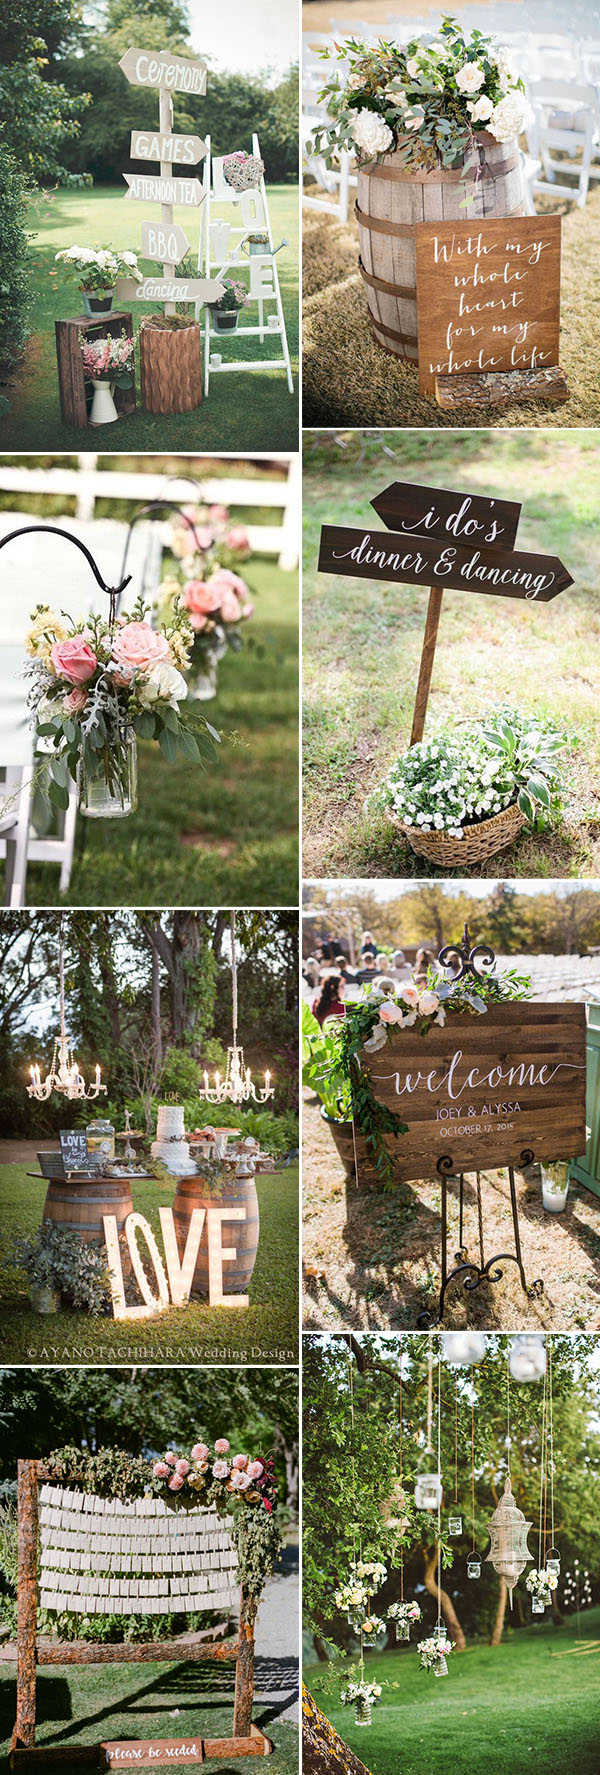 48 Most Inspiring Garden Inspired Wedding Ideas in 12 Smart Ways How to Improve Backyard Garden Wedding Ideas